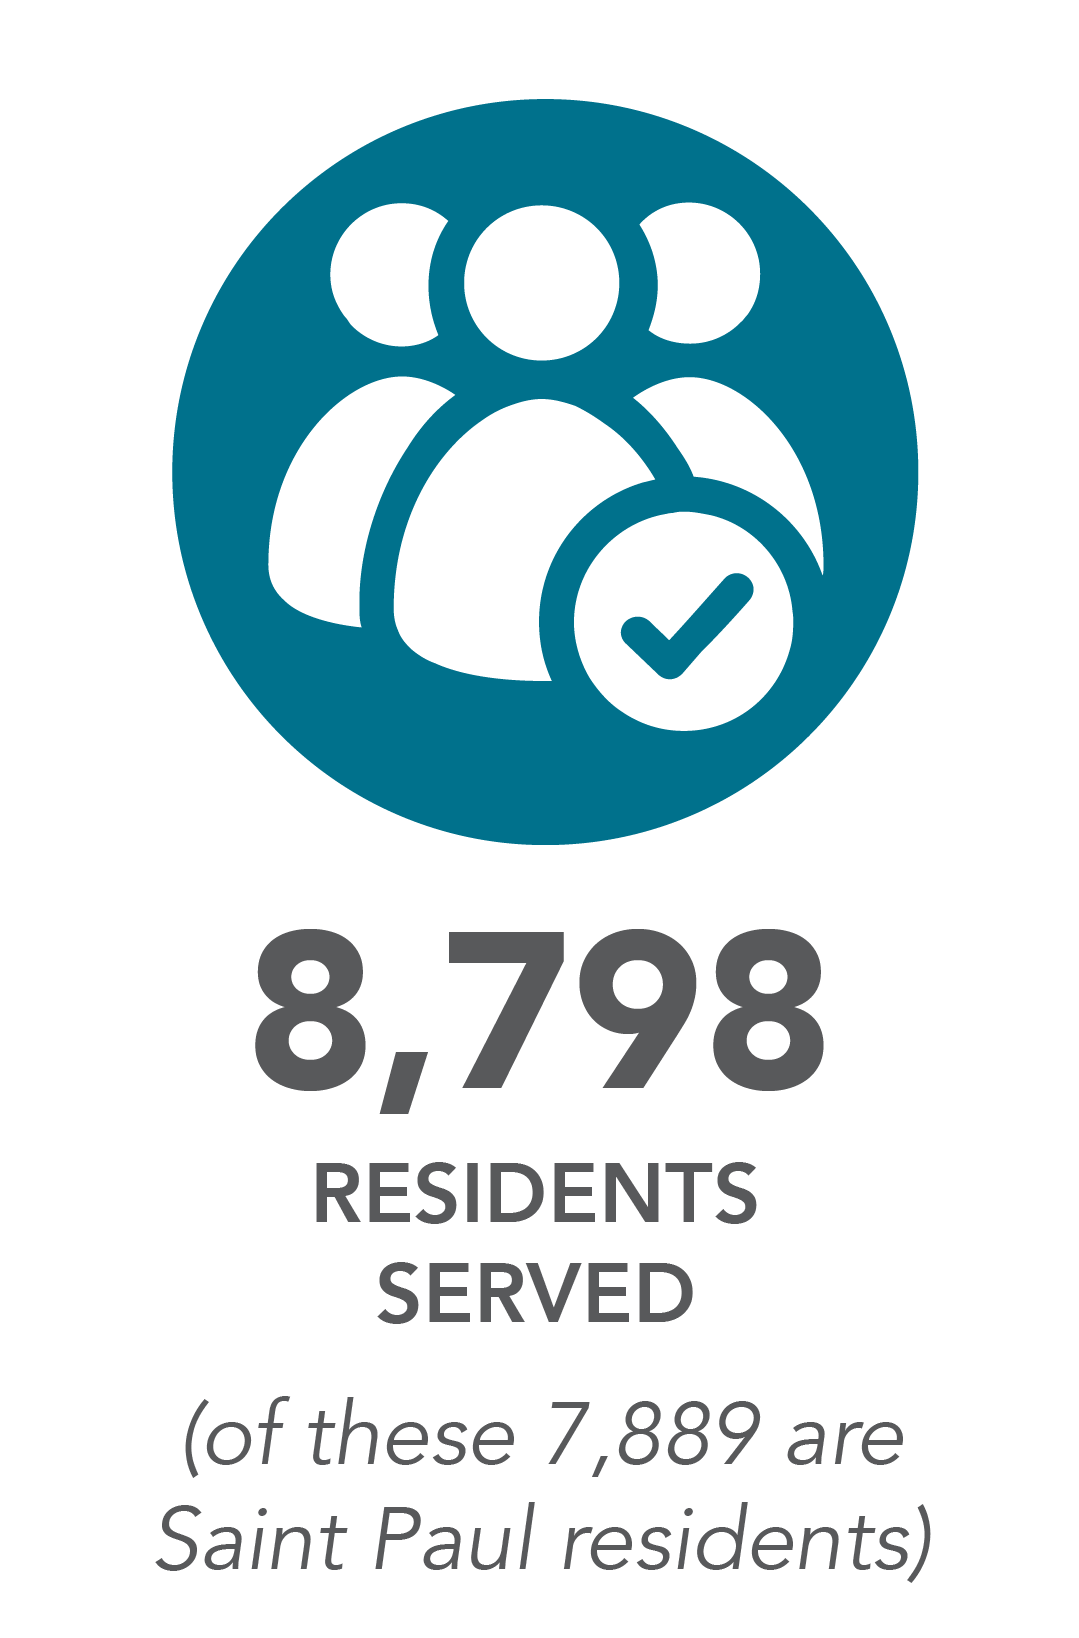 8,798 residents served. (of these 7,889 are Saint Paul residents)